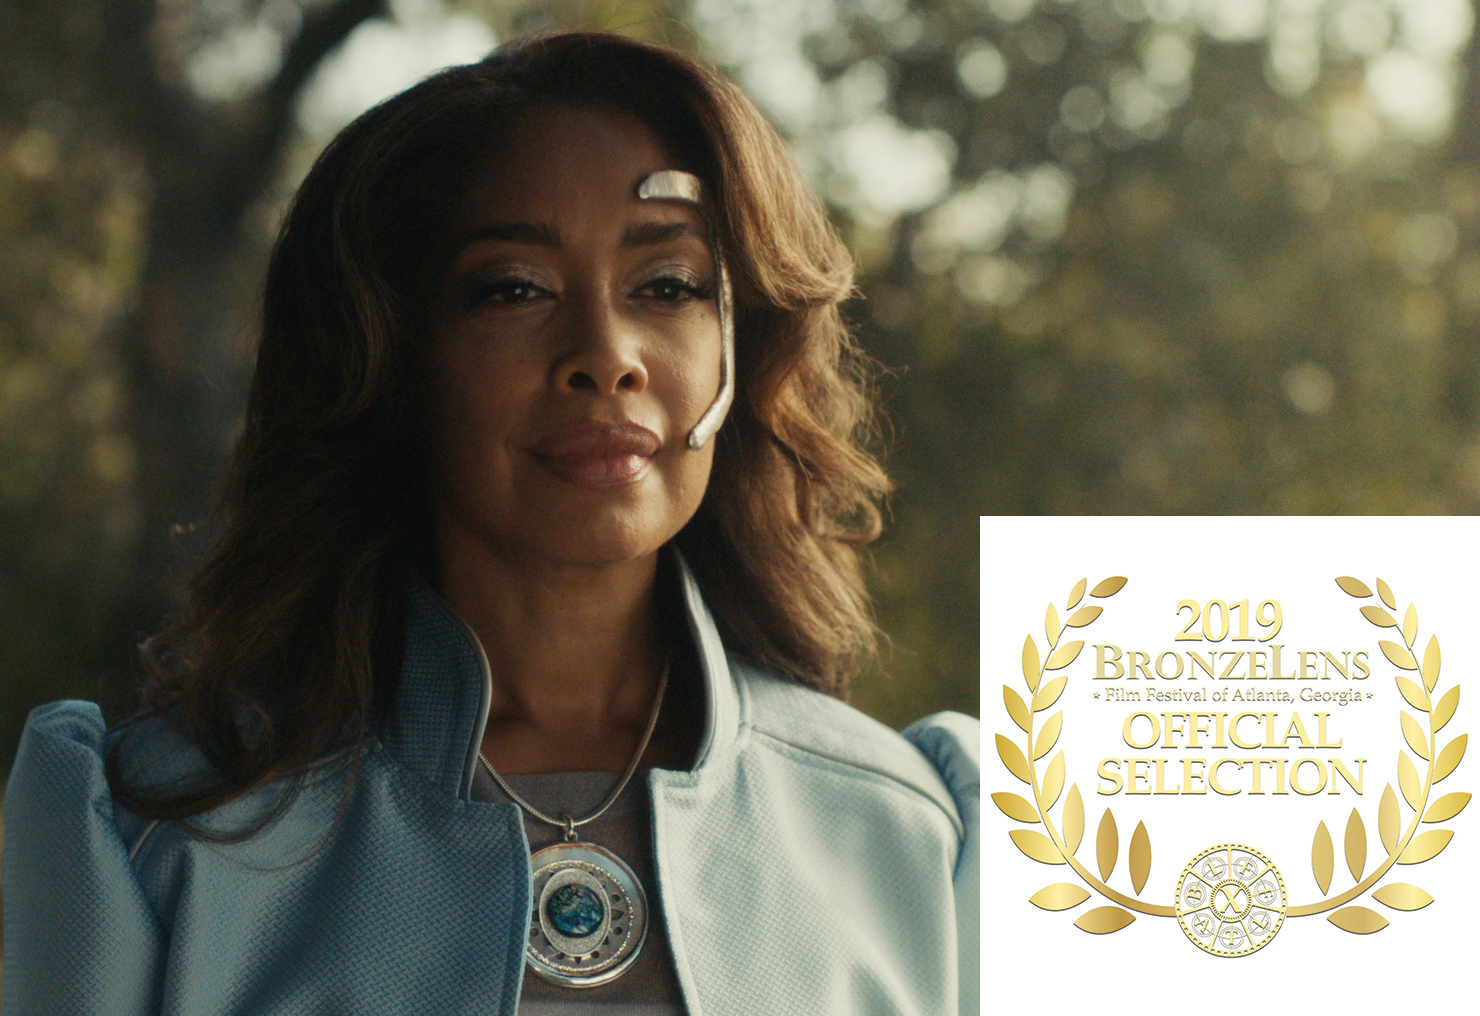 DISPEL is Screening at BronzeLens Film Festival - DISPEL has been selected to screen at the 2019 BronzeLens Film Festival, celebrating the event's tenth anniversary!